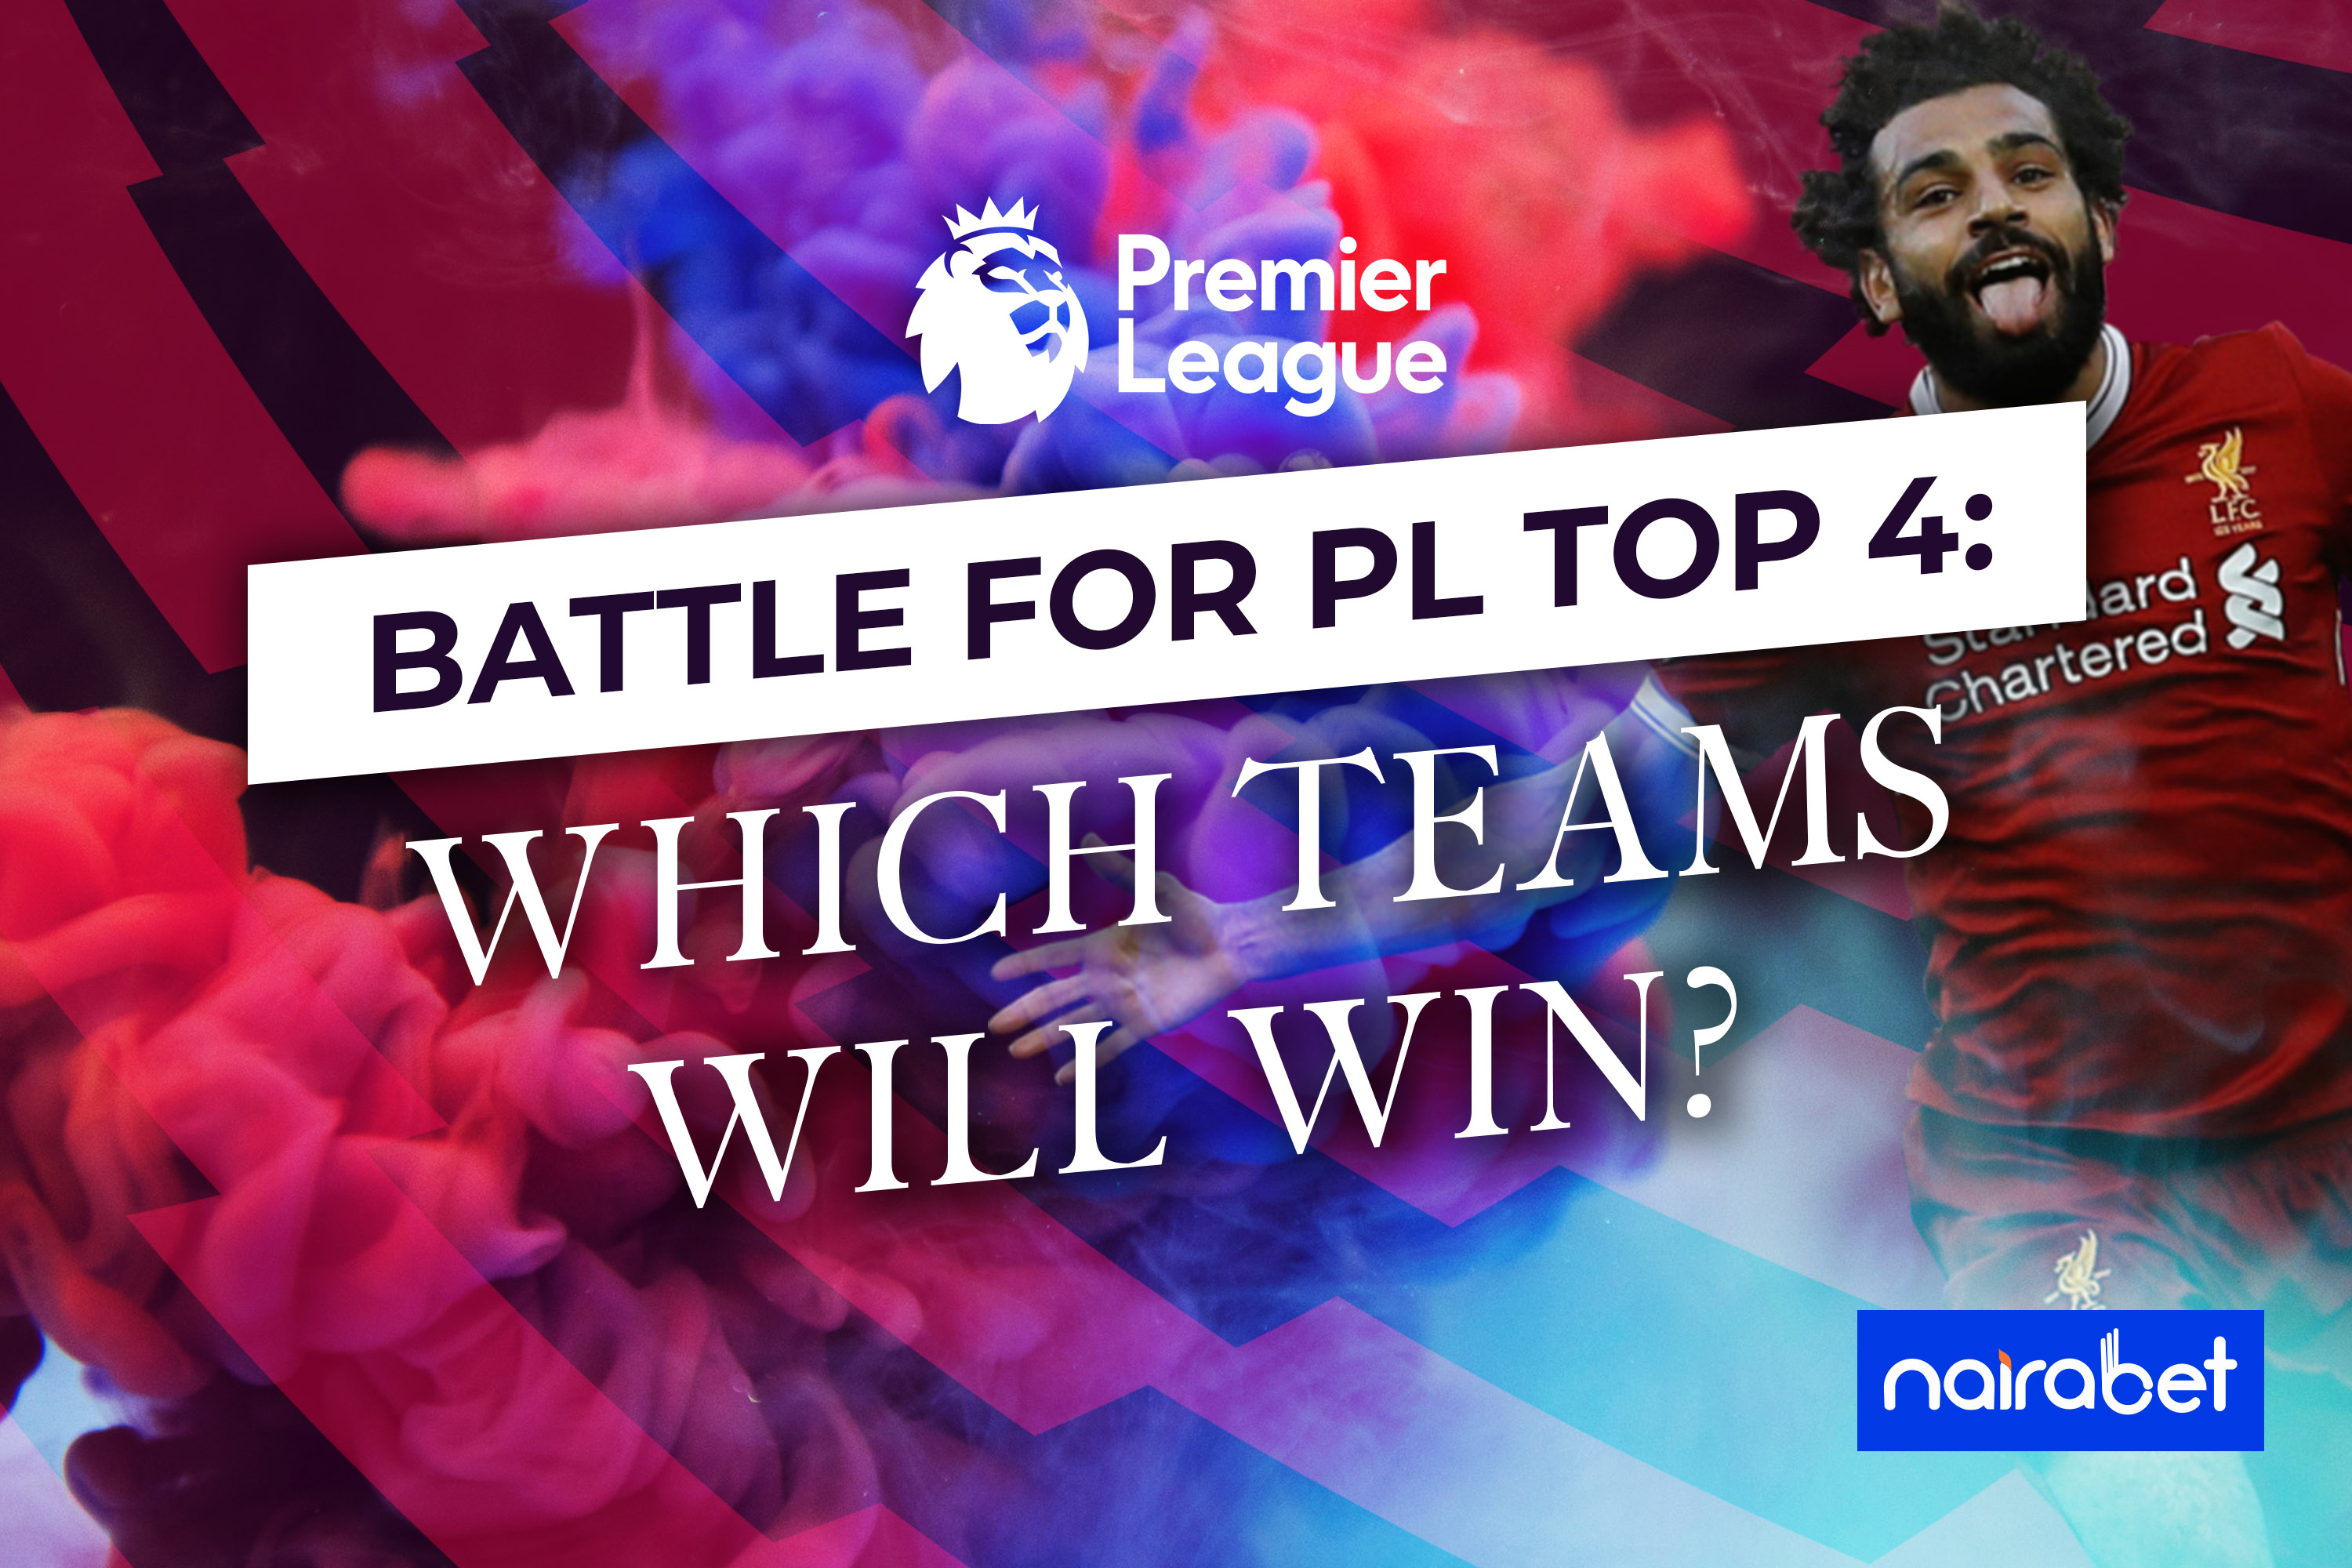 Battle for PL top 4